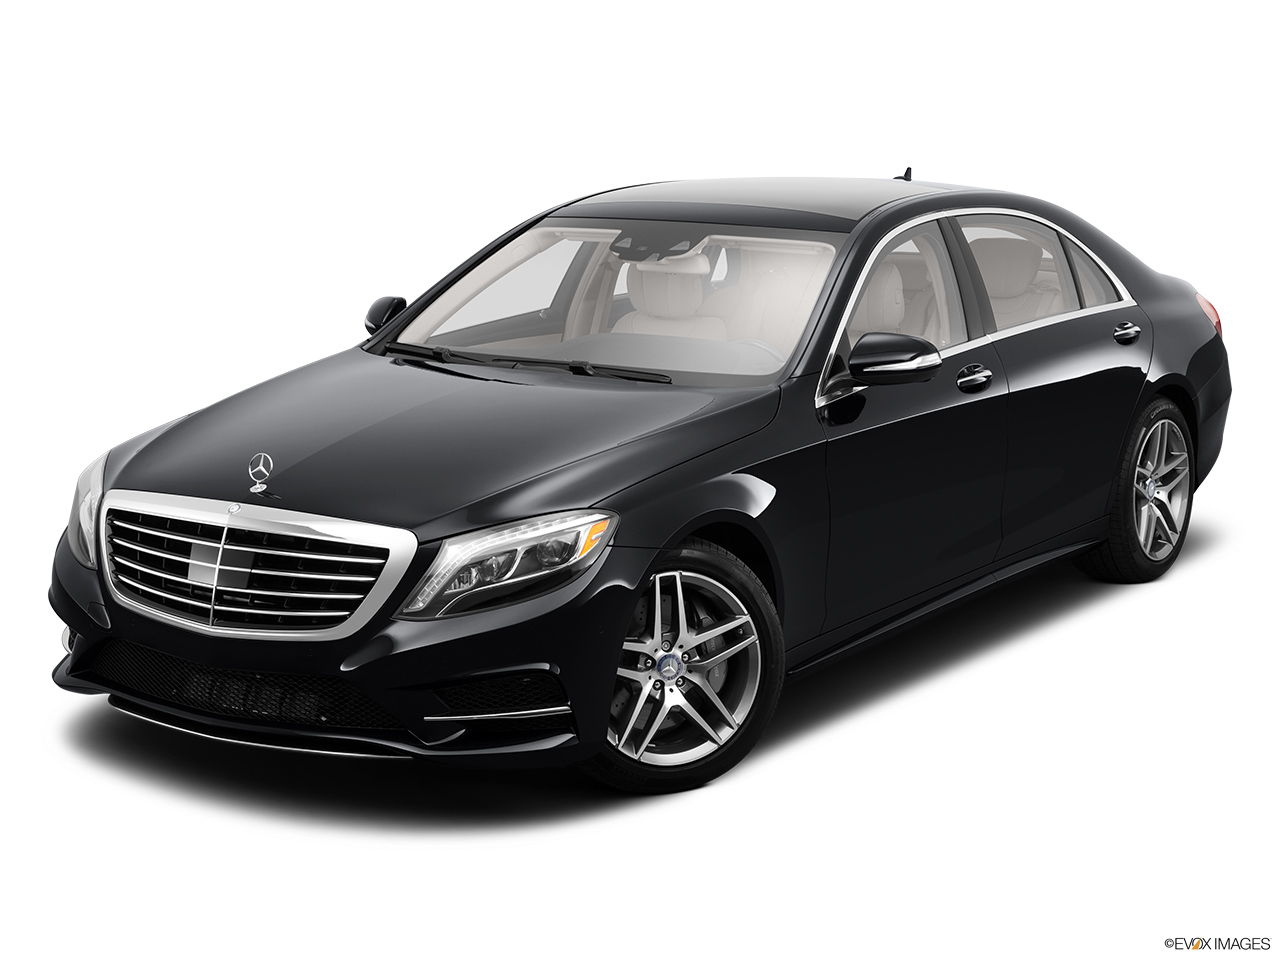 2014 mercedes benz s class sedan s550 4matic for Mercedes benz s550 4matic 2014